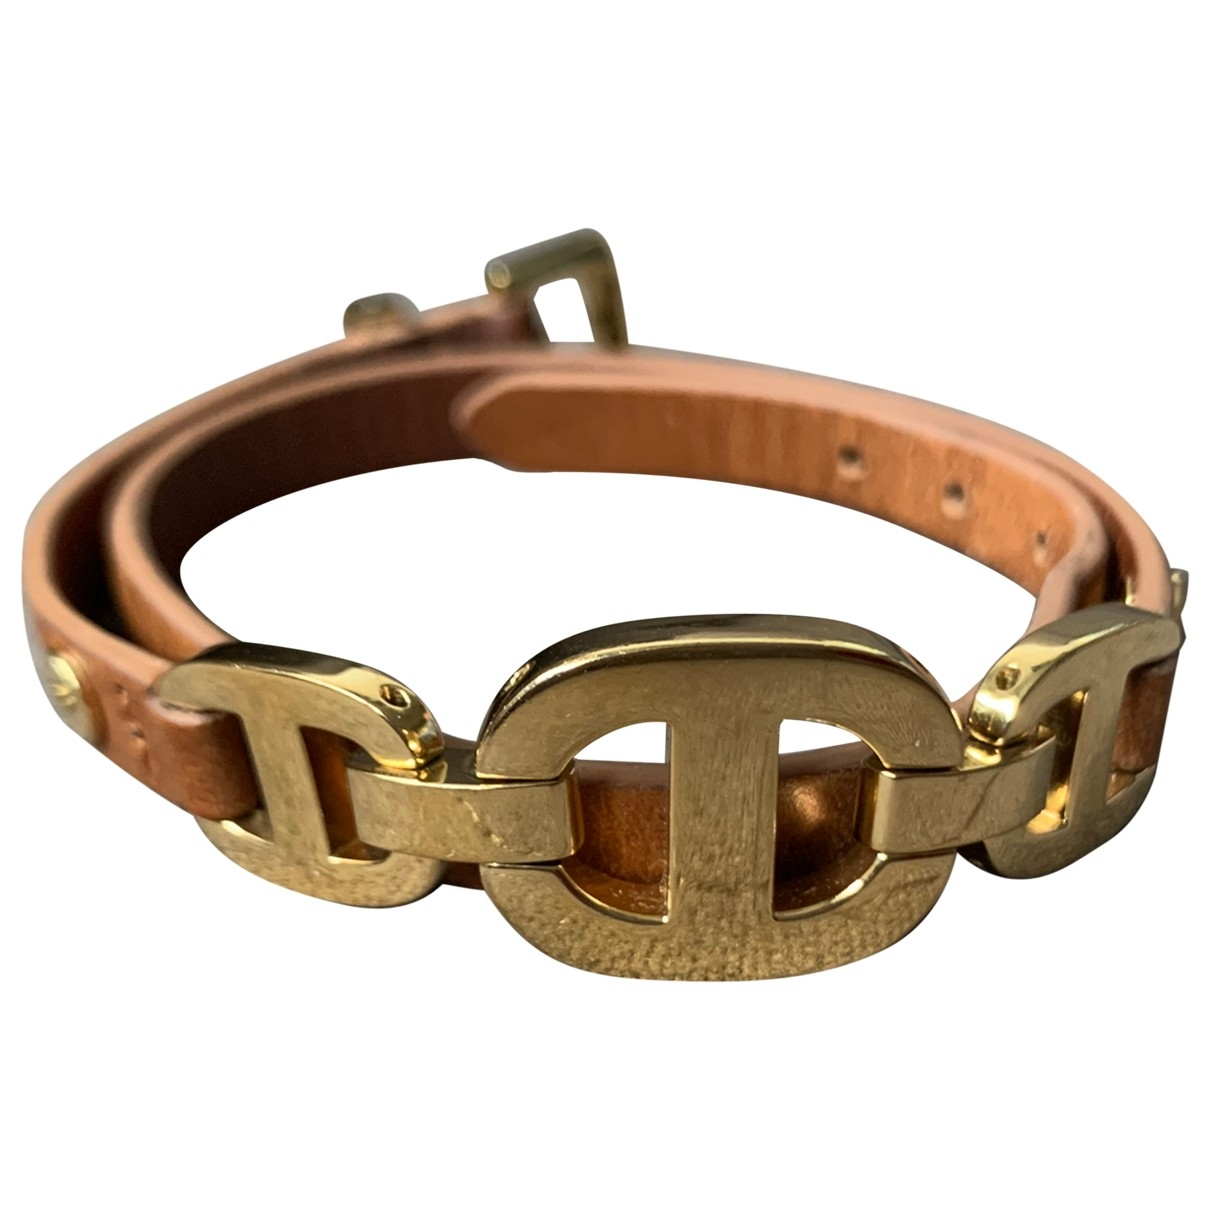 Michael Kors \N Brown Leather bracelet for Women \N